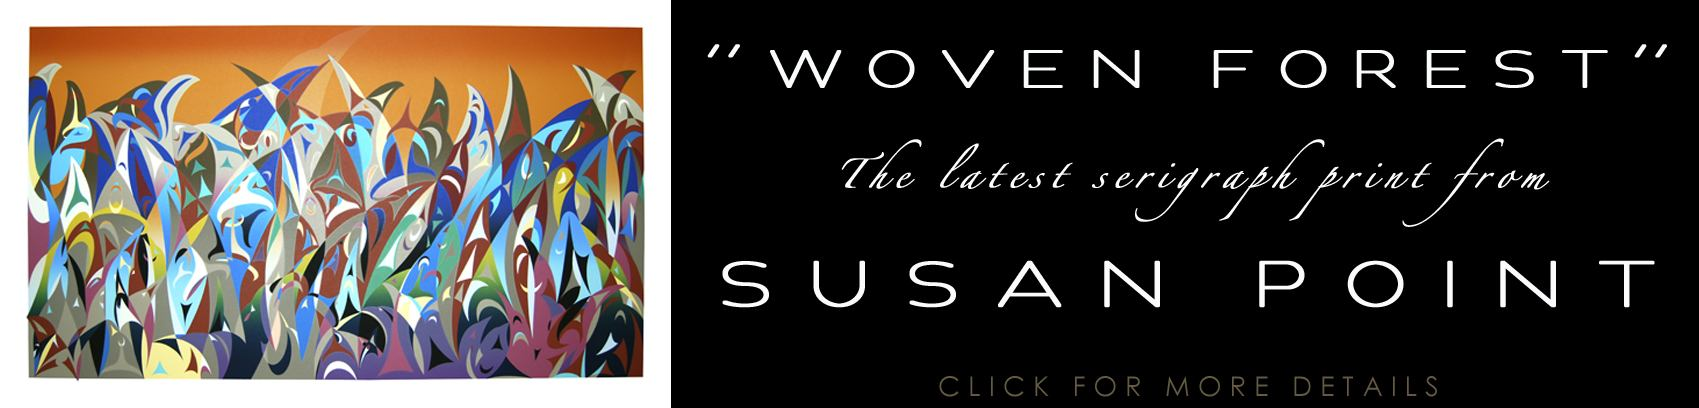 Susan Point - Woven Forest